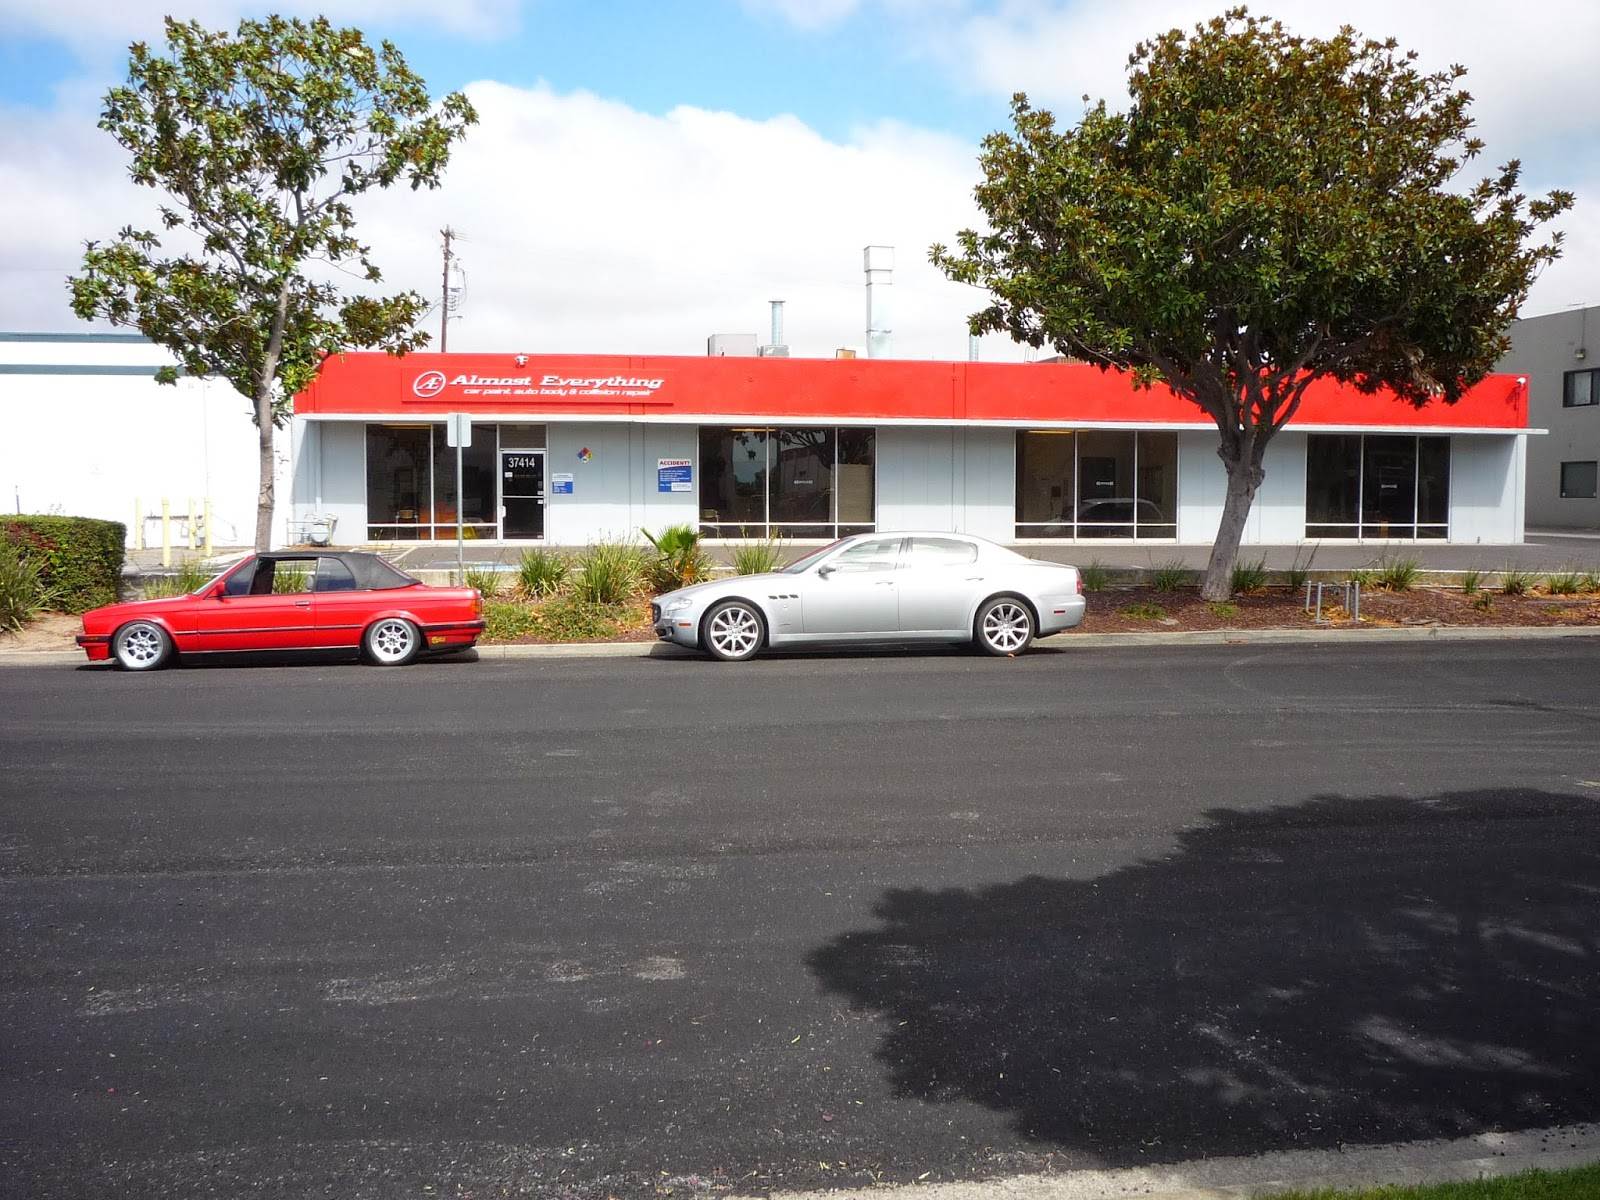 Almost Everything Auto Body - Best Shop in San Francisco Bay Area